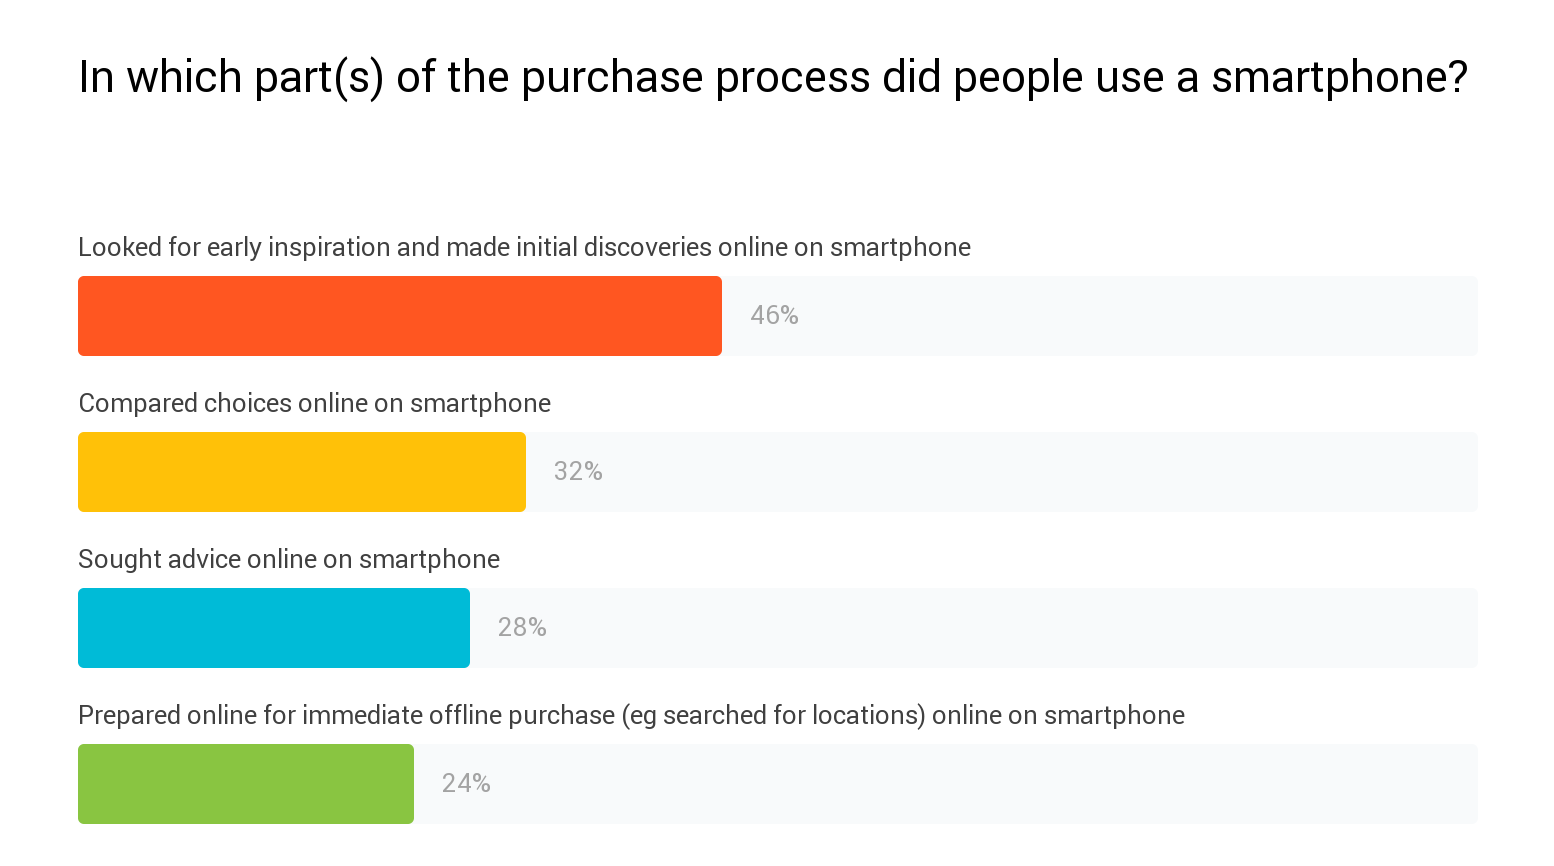 Percentage of mobile searches by usage. Purchase funnel breakdown